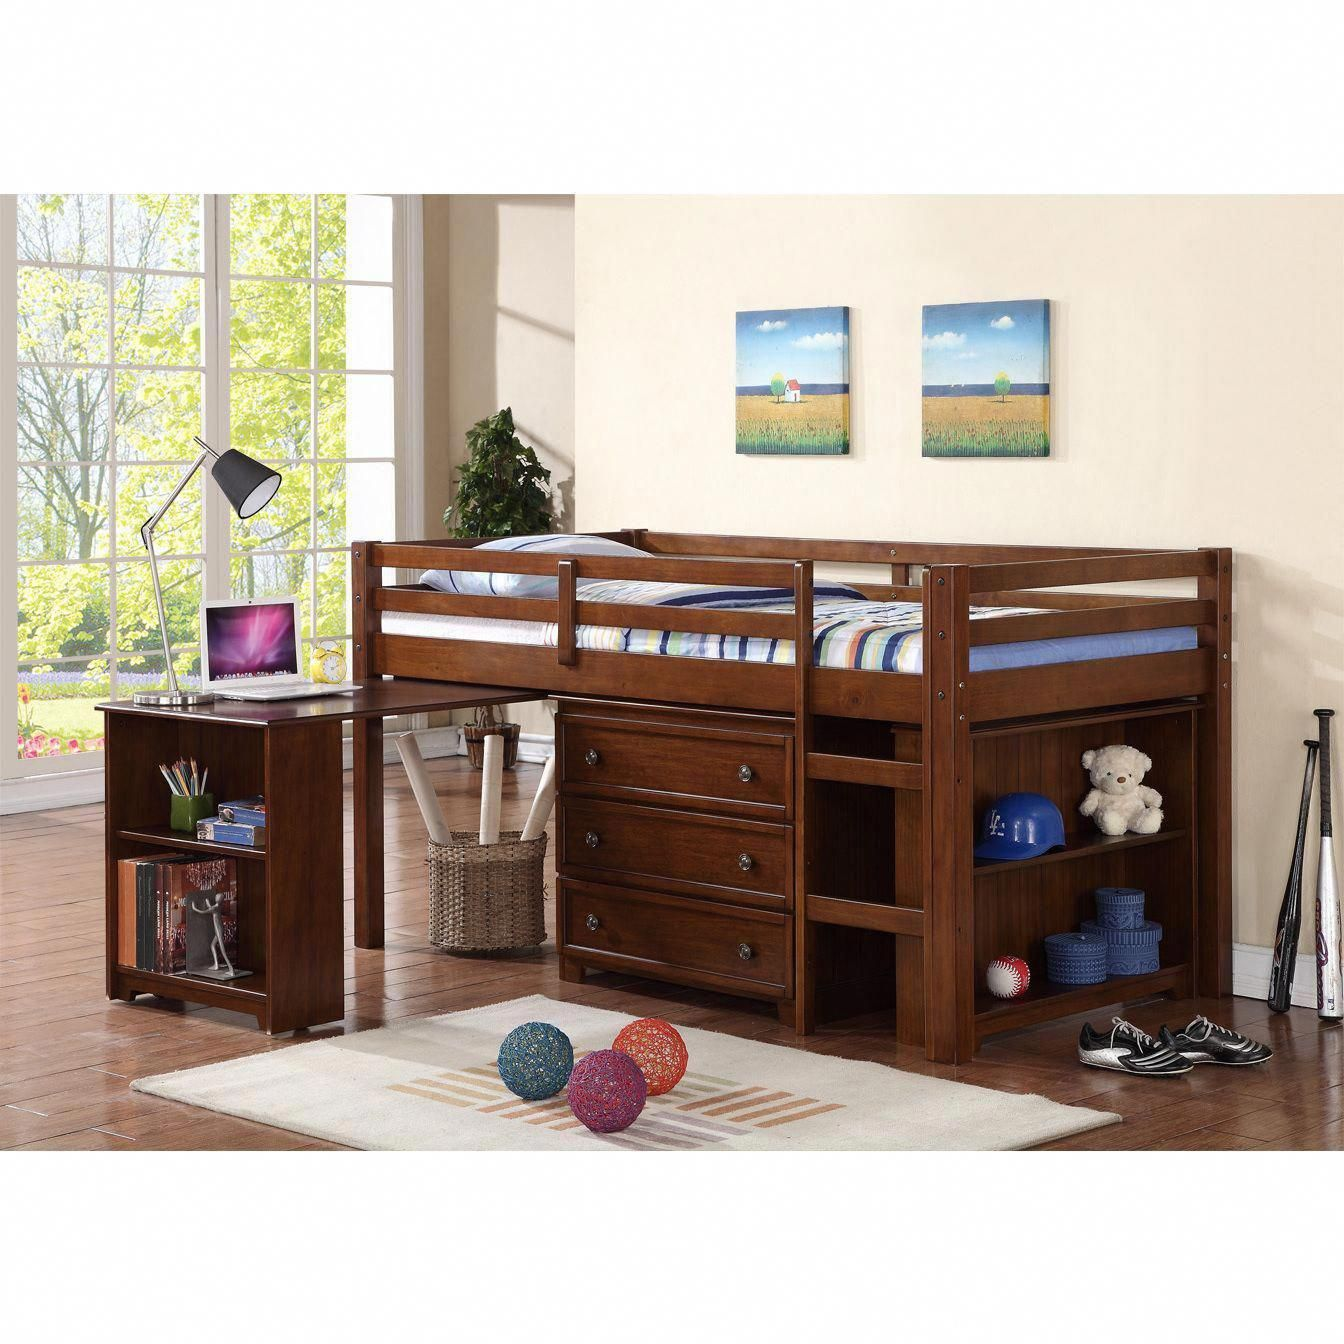 Furniture Wood Low Loft Bunk Bed For Kids With Trundle Desk And